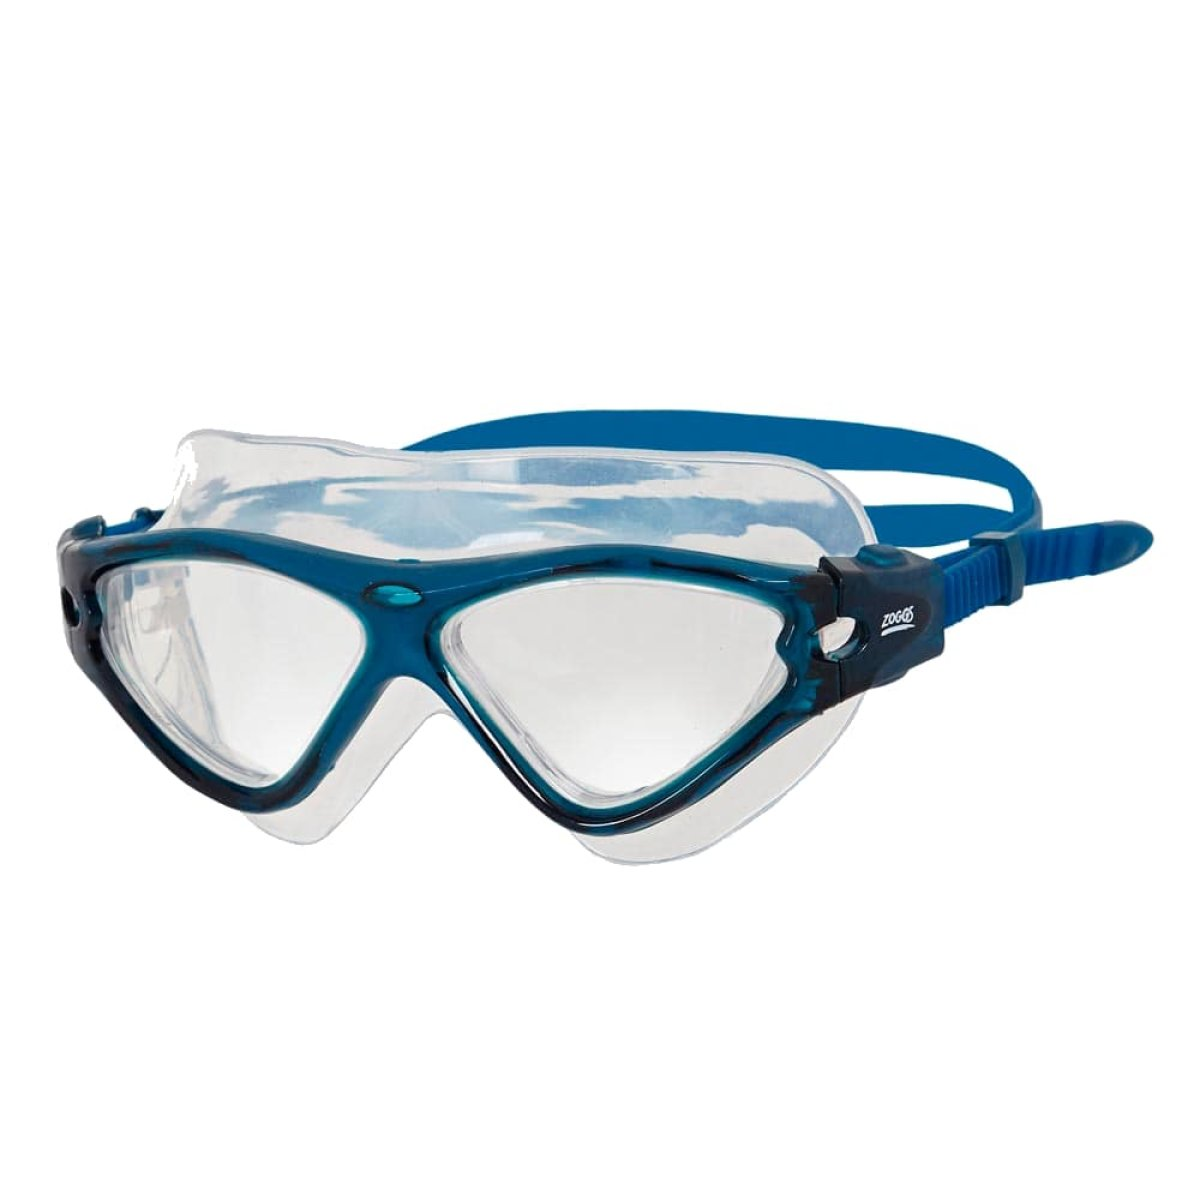 Очки-маска Zoggs Tri-Vision Mask Clear / T.Blue 302919